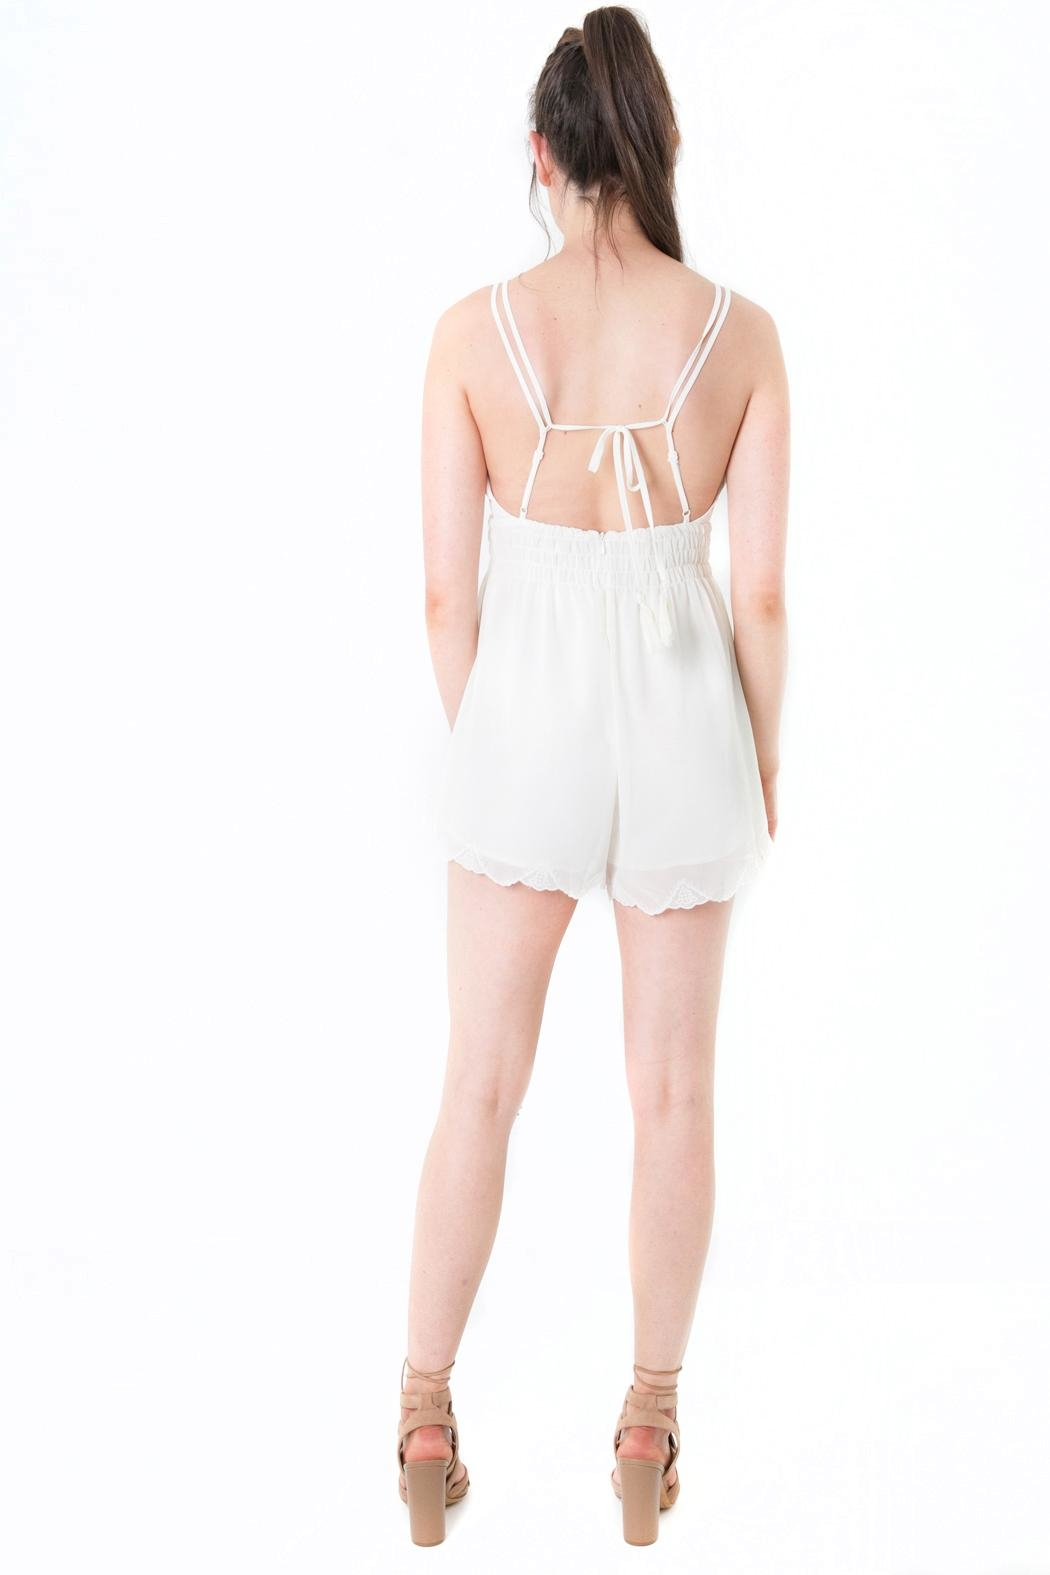 4e153244f4c Lush Lace Trimmed Romper from Colorado by Apricot Lane - Centennial ...